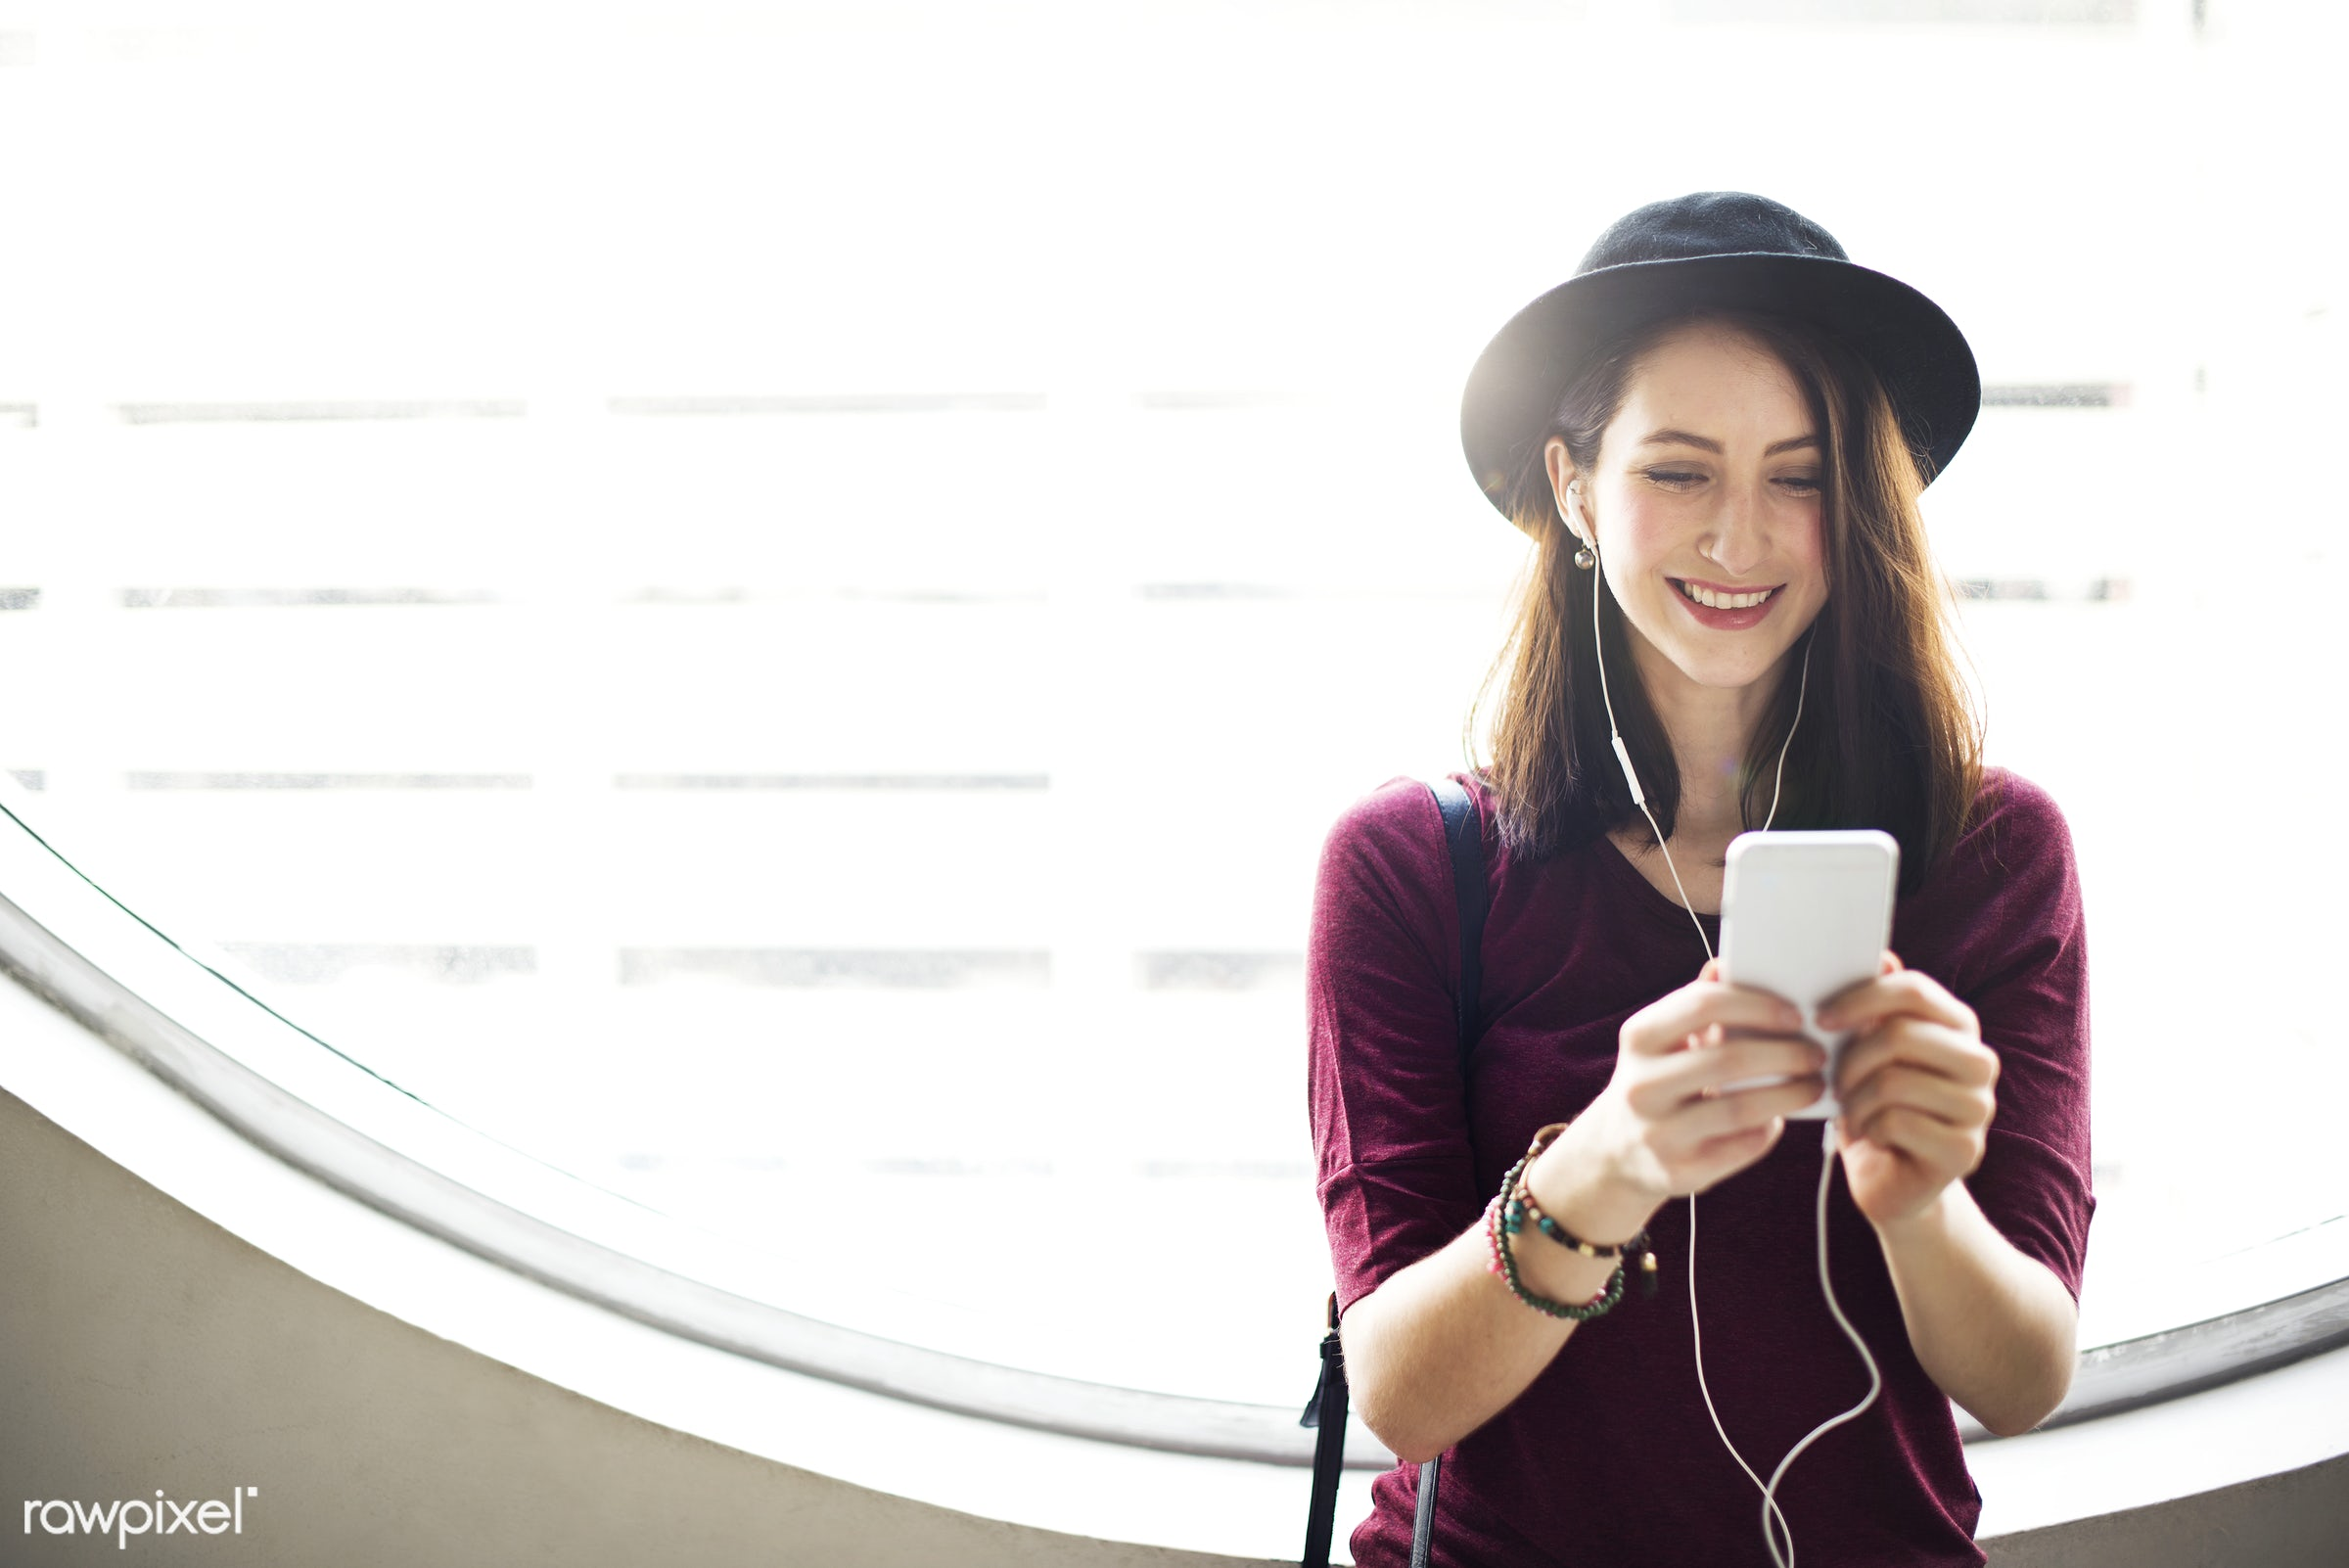 Young woman playing on her phone - podcast, thinking, activity, audio equipment, brown hair, calm, casual, cheerful,...